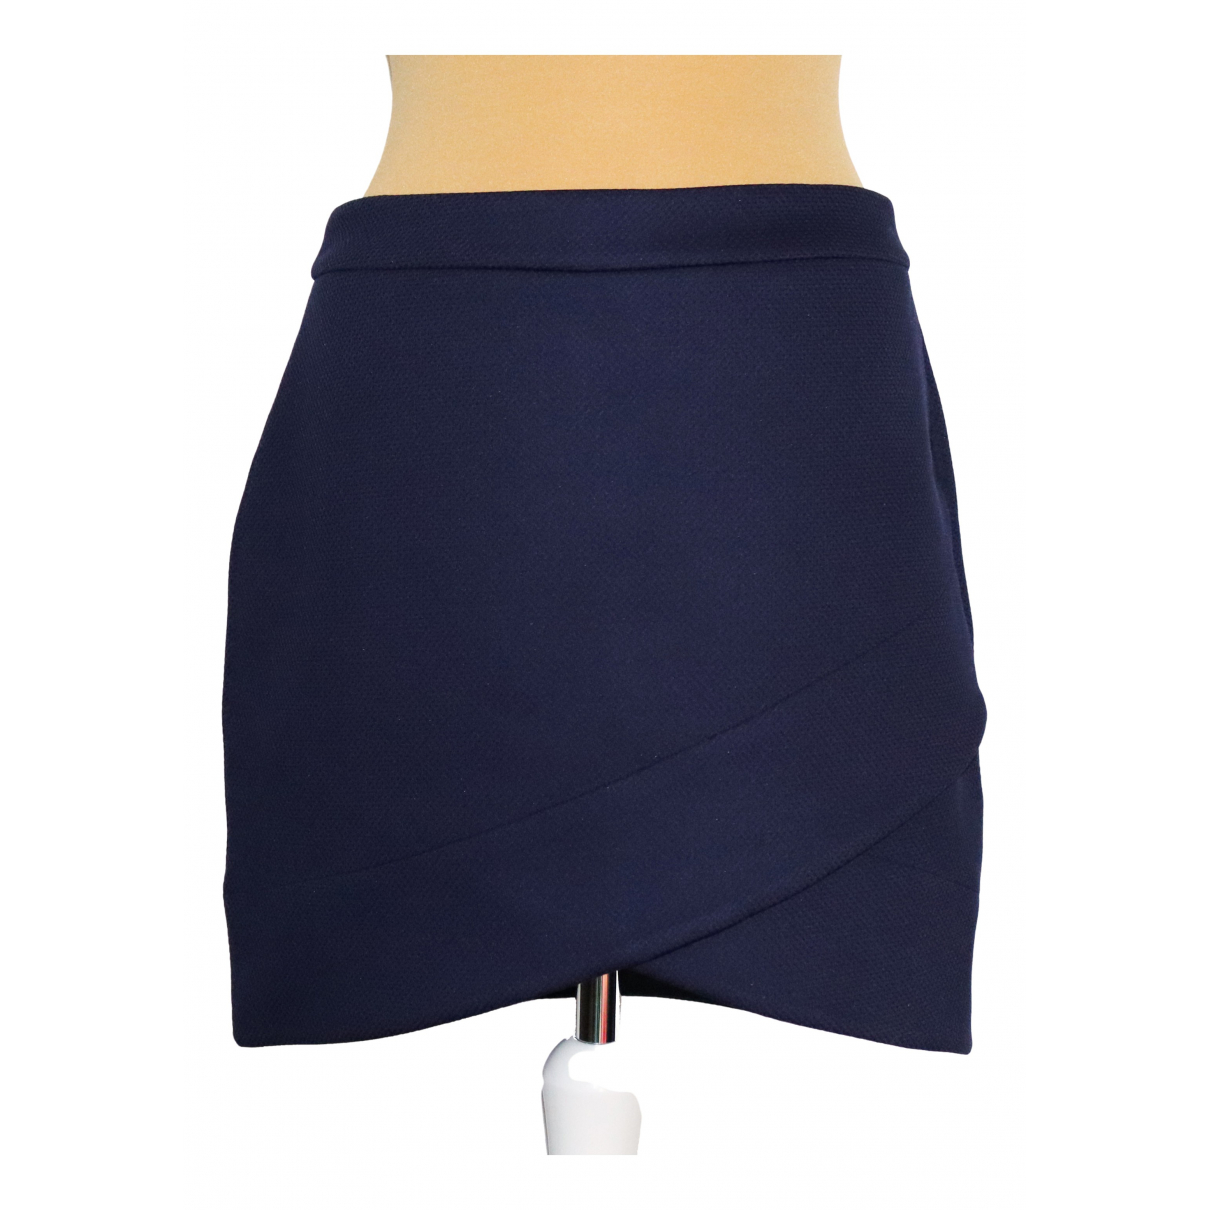 & Stories \N Navy skirt for Women 40 FR